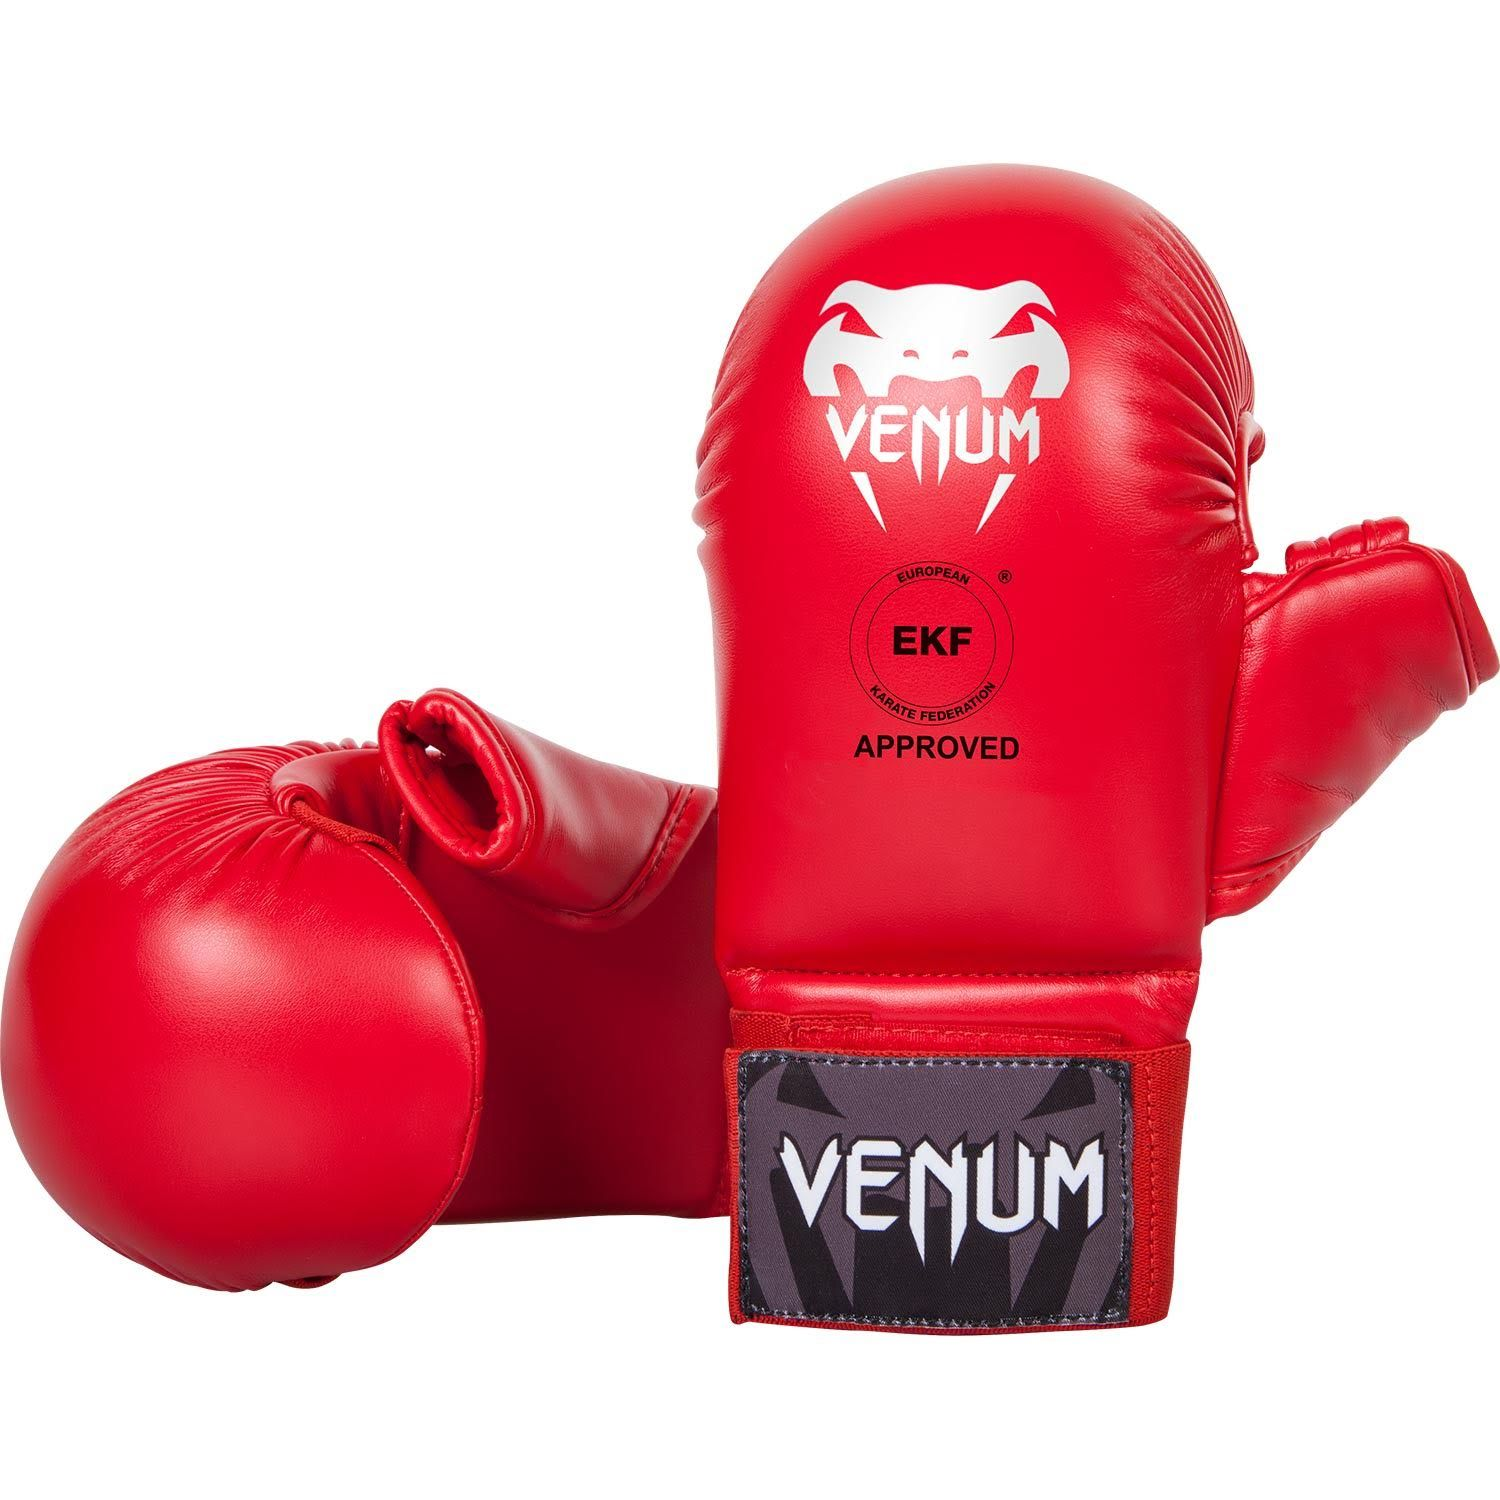 Venum Karate Mitts - With Thumb Protection - Red - Approved by the EKF